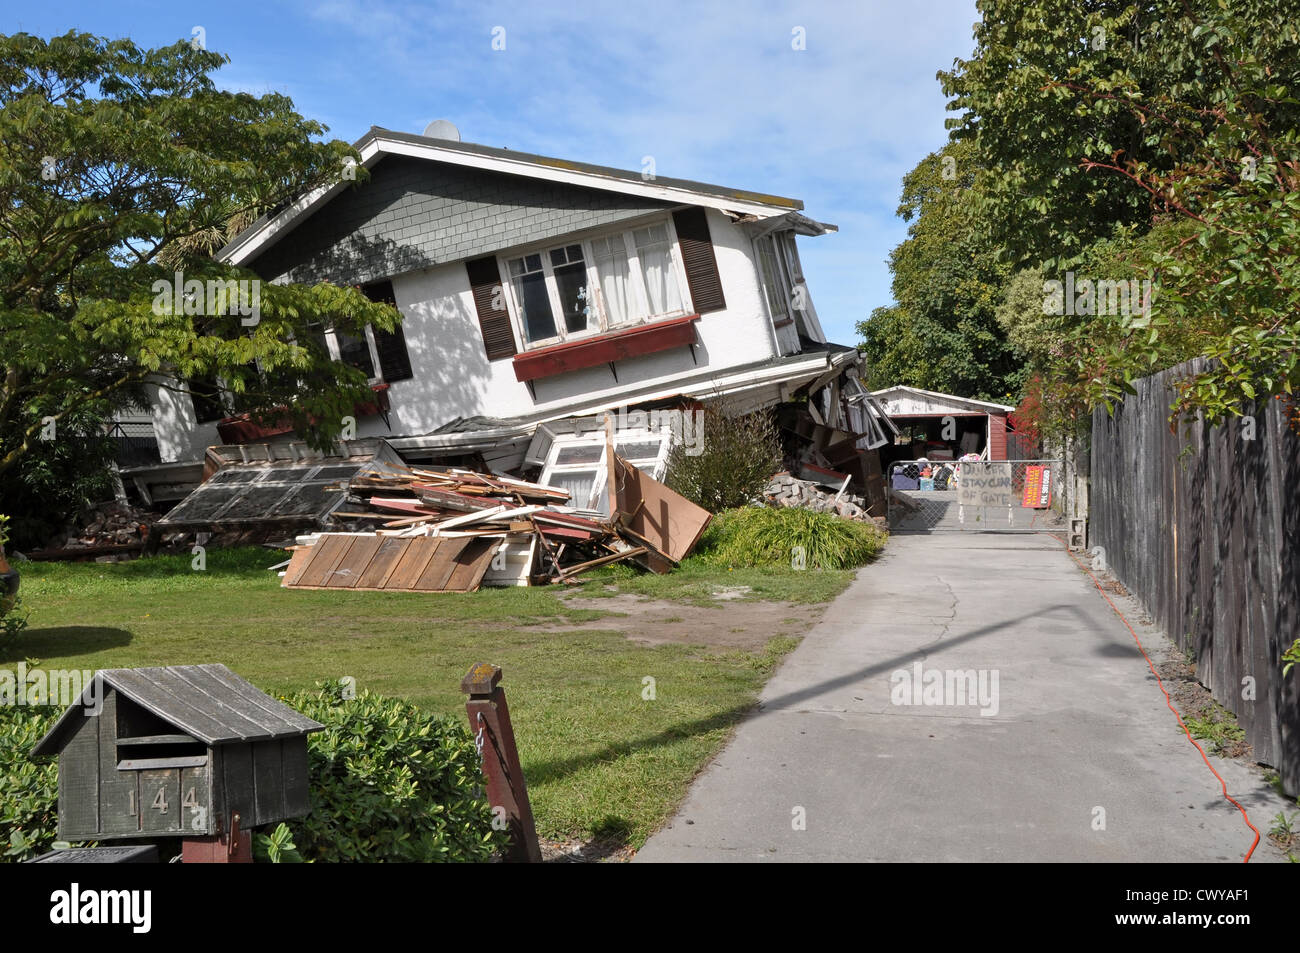 House in Avonside collapses in the largest earthquake Christchurch has ever experienced. Stock Photo